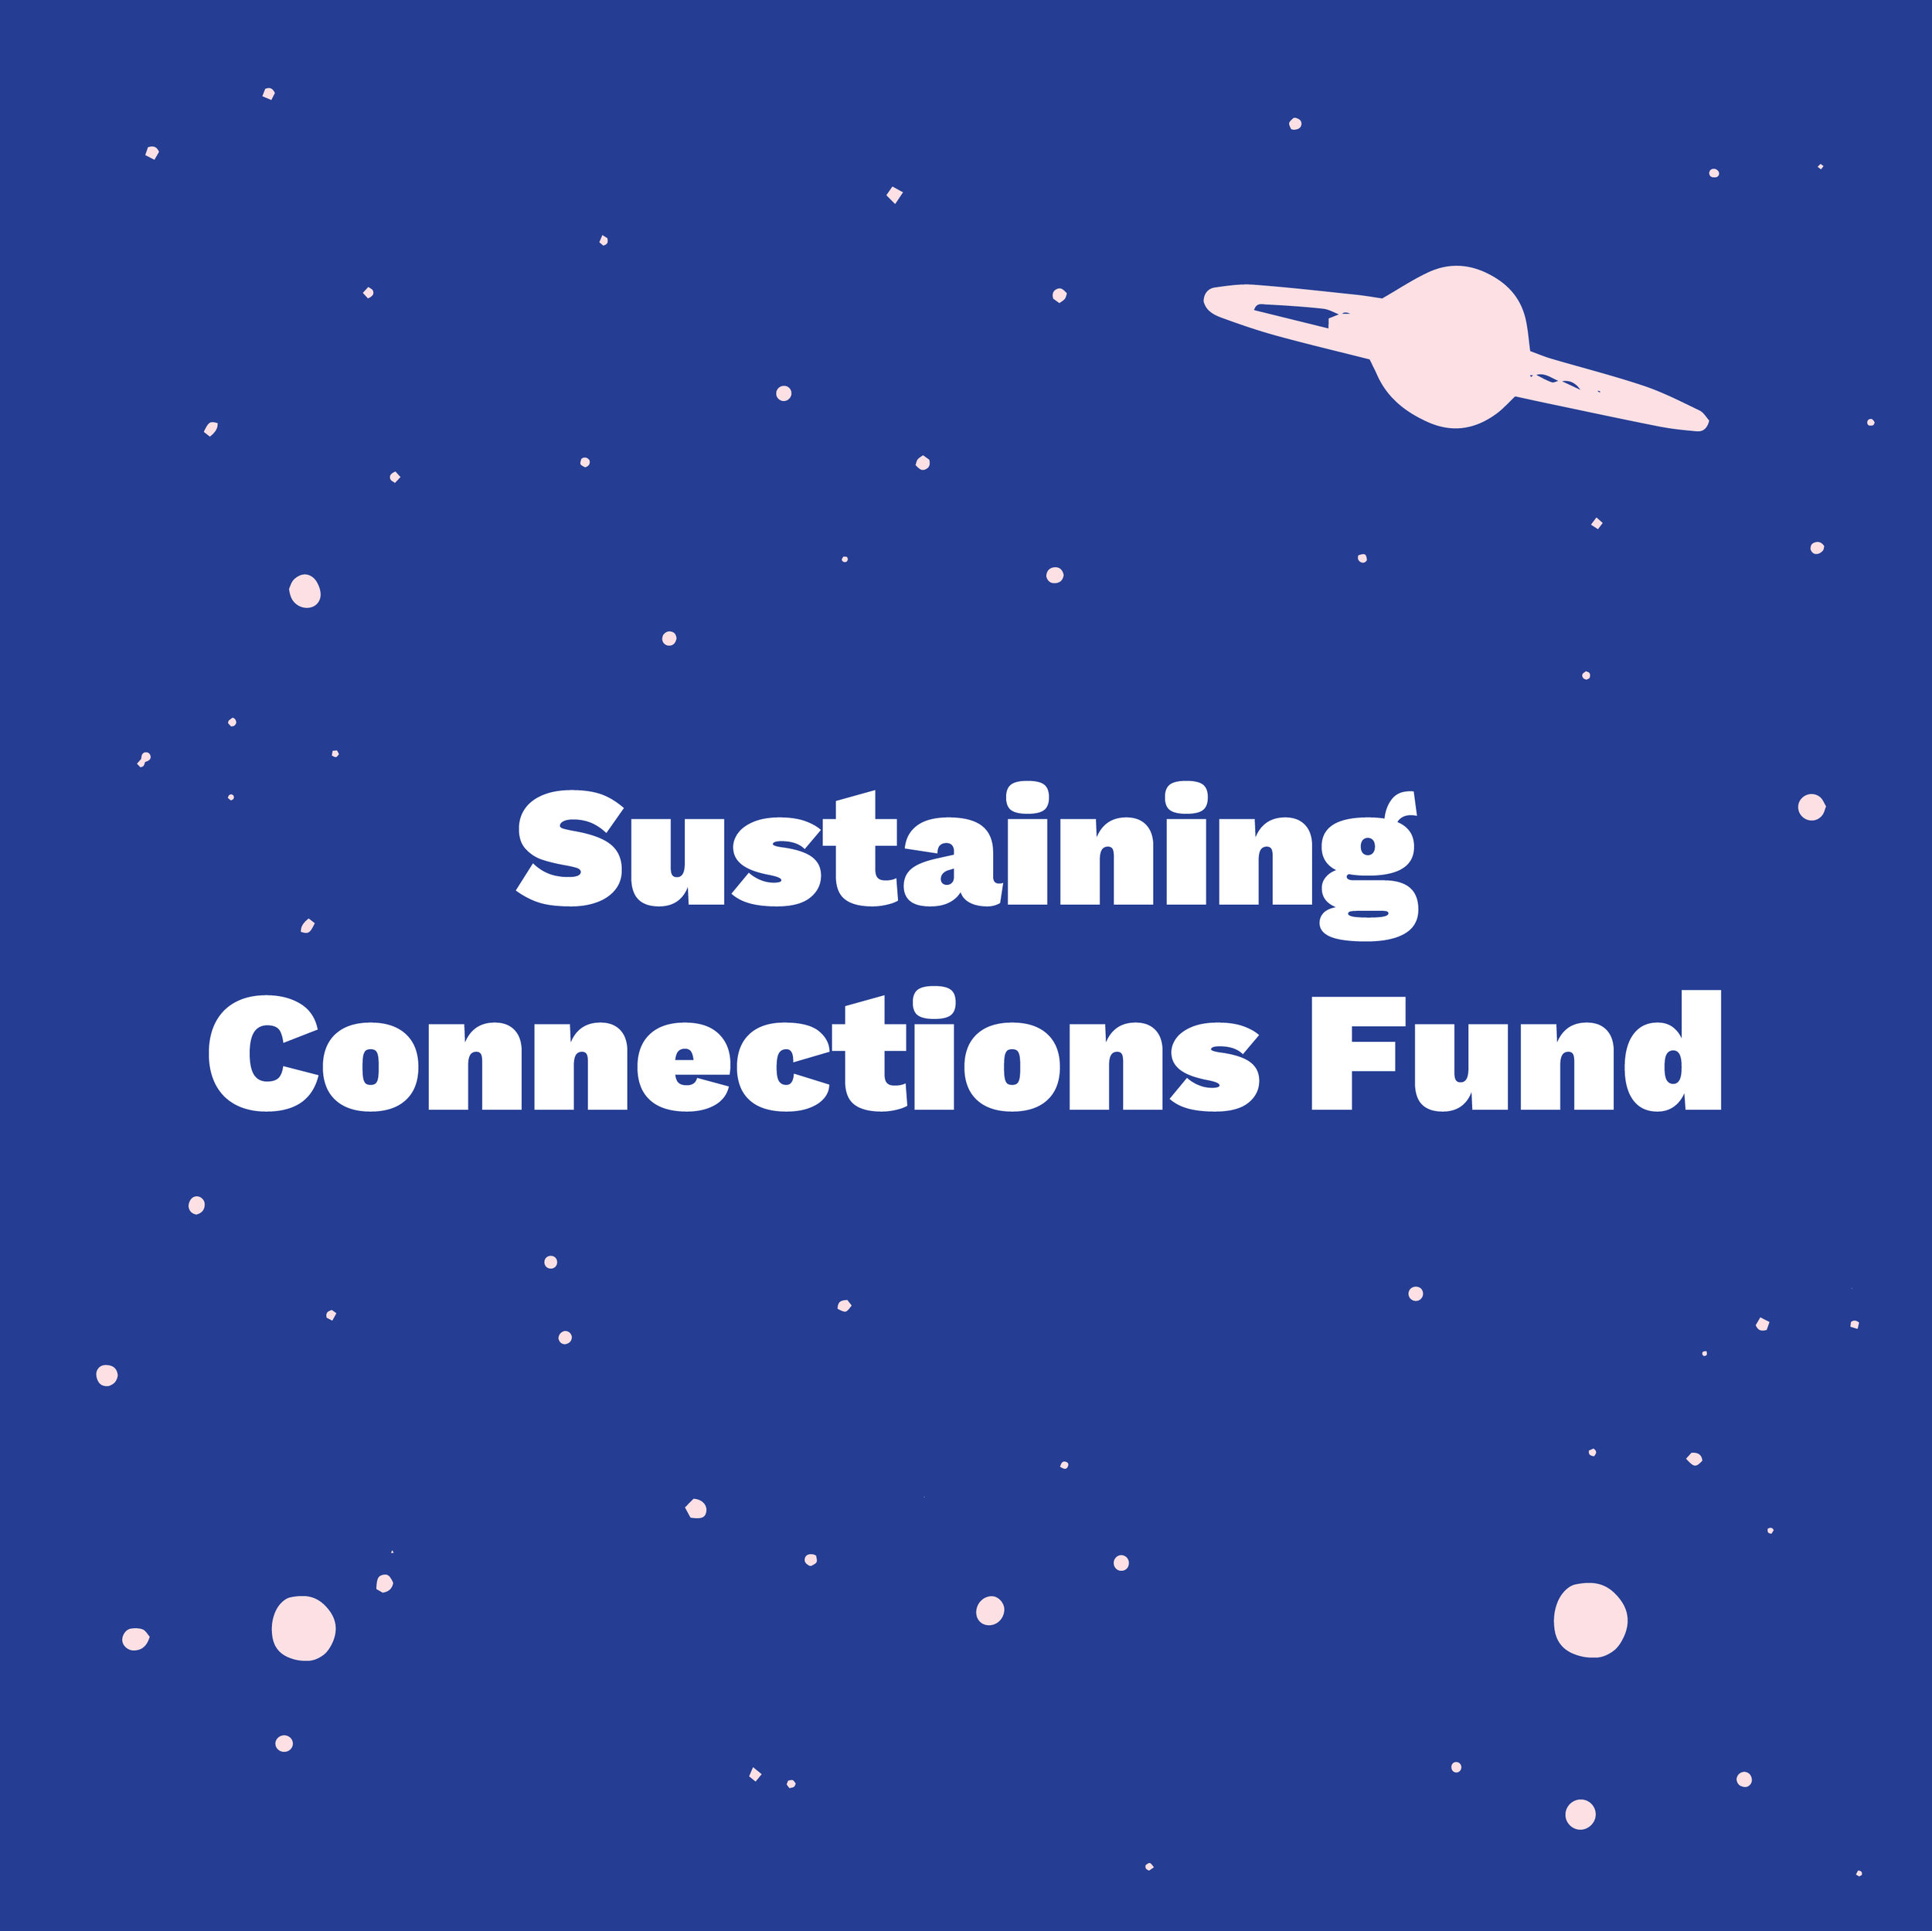 Sustaining Connections Fund